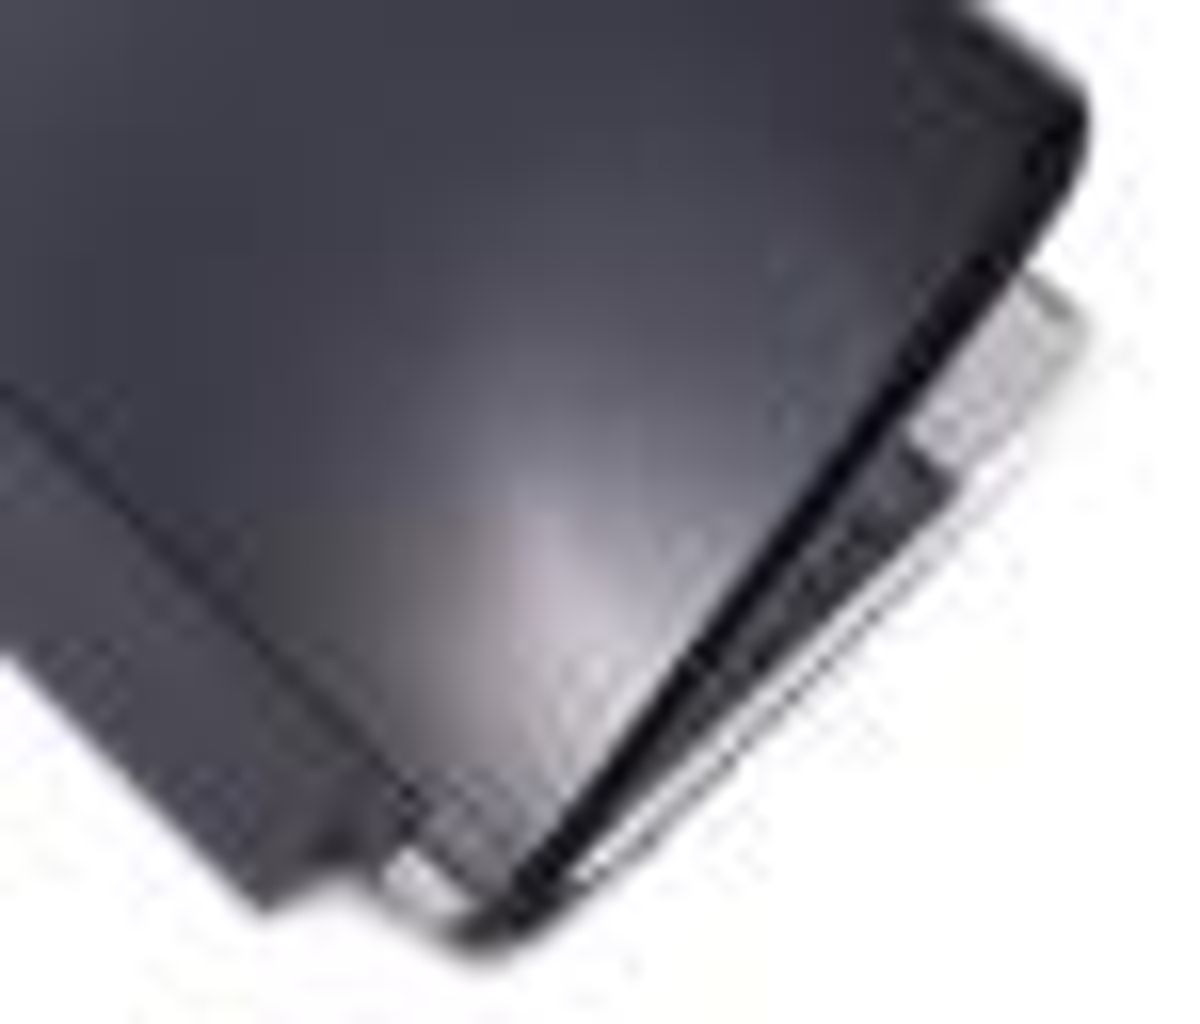 Acer Aspire One A0751h netbook - offers good battery life at Rs 20,500